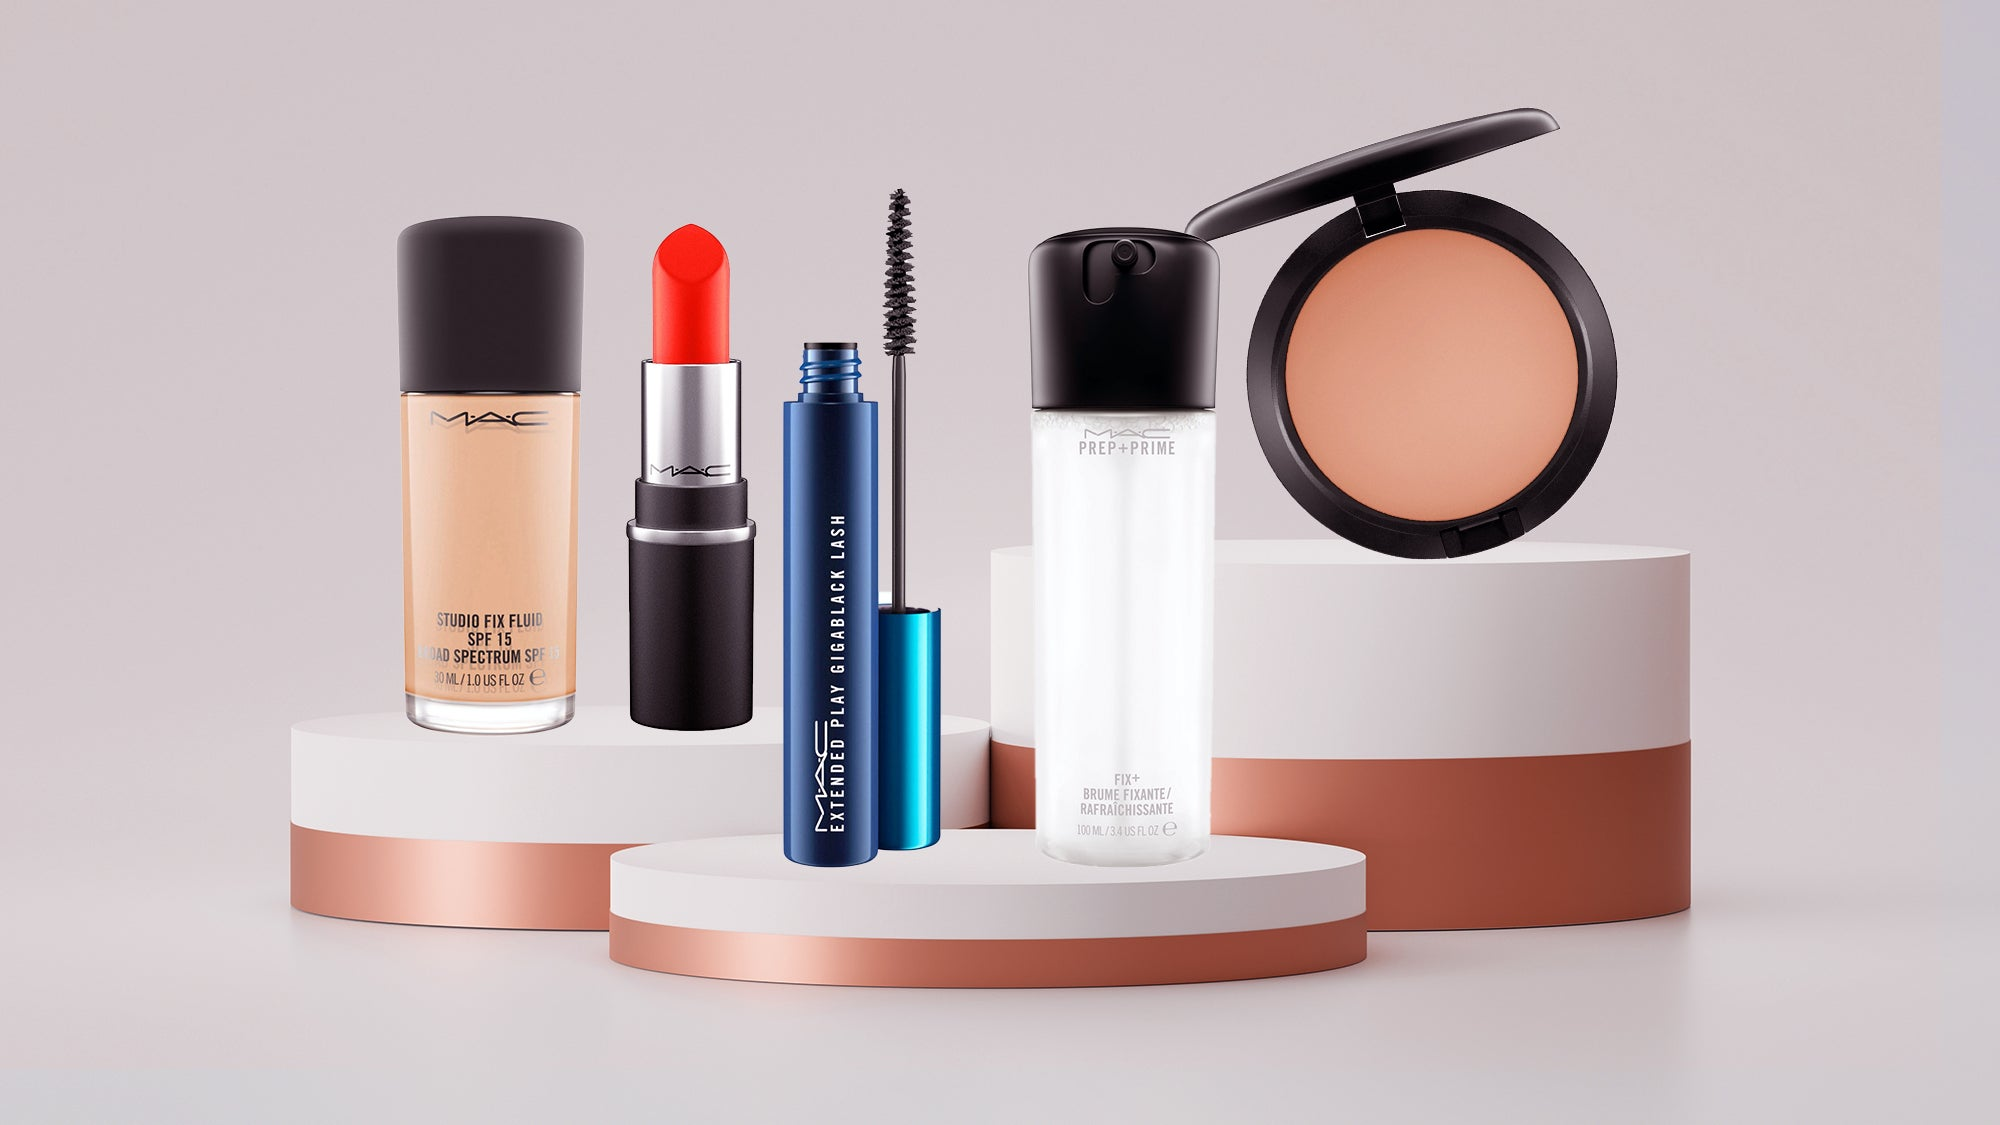 blog-mac-cosmetics-header-2000x1125px.jpg